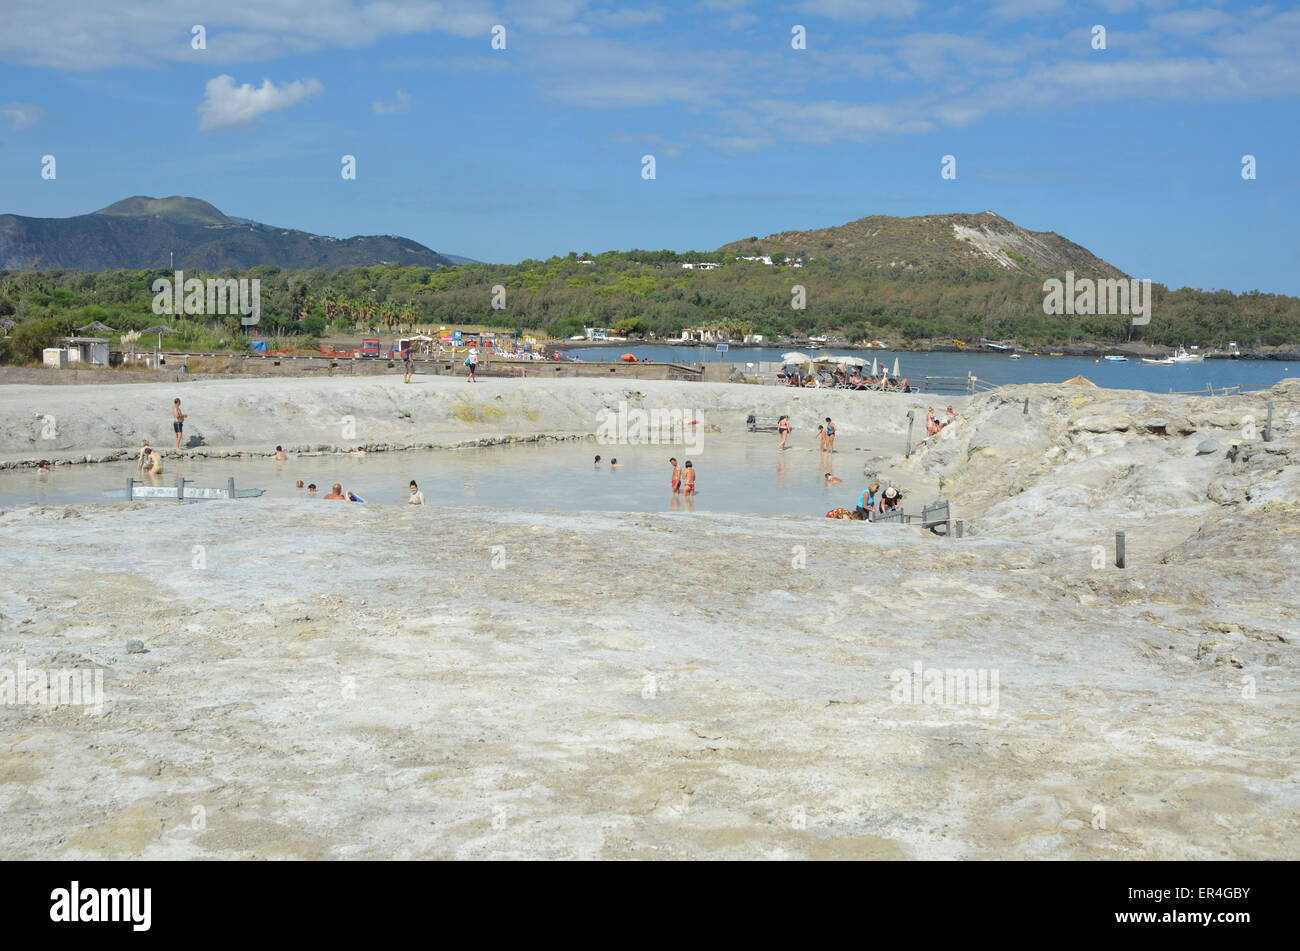 Bathing on Vulcano Island, Aeolian Islands, Sicily, Italy, Europe, - Stock Image